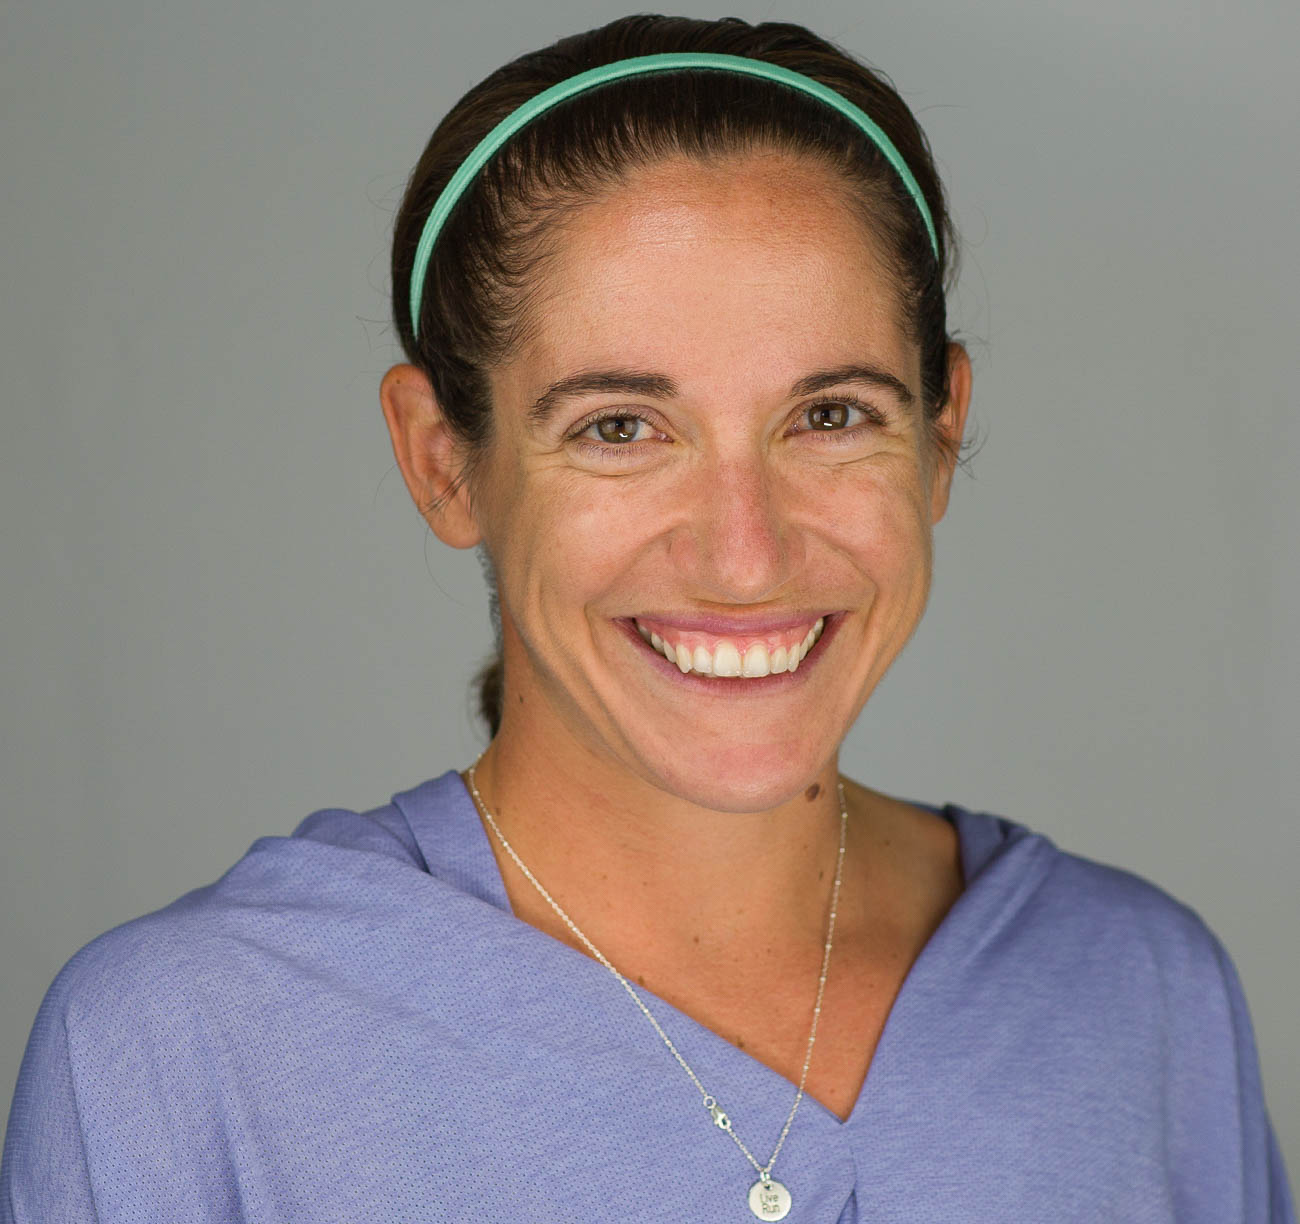 Ali Gardino Pilates Instructor, Certified Personal Trainer